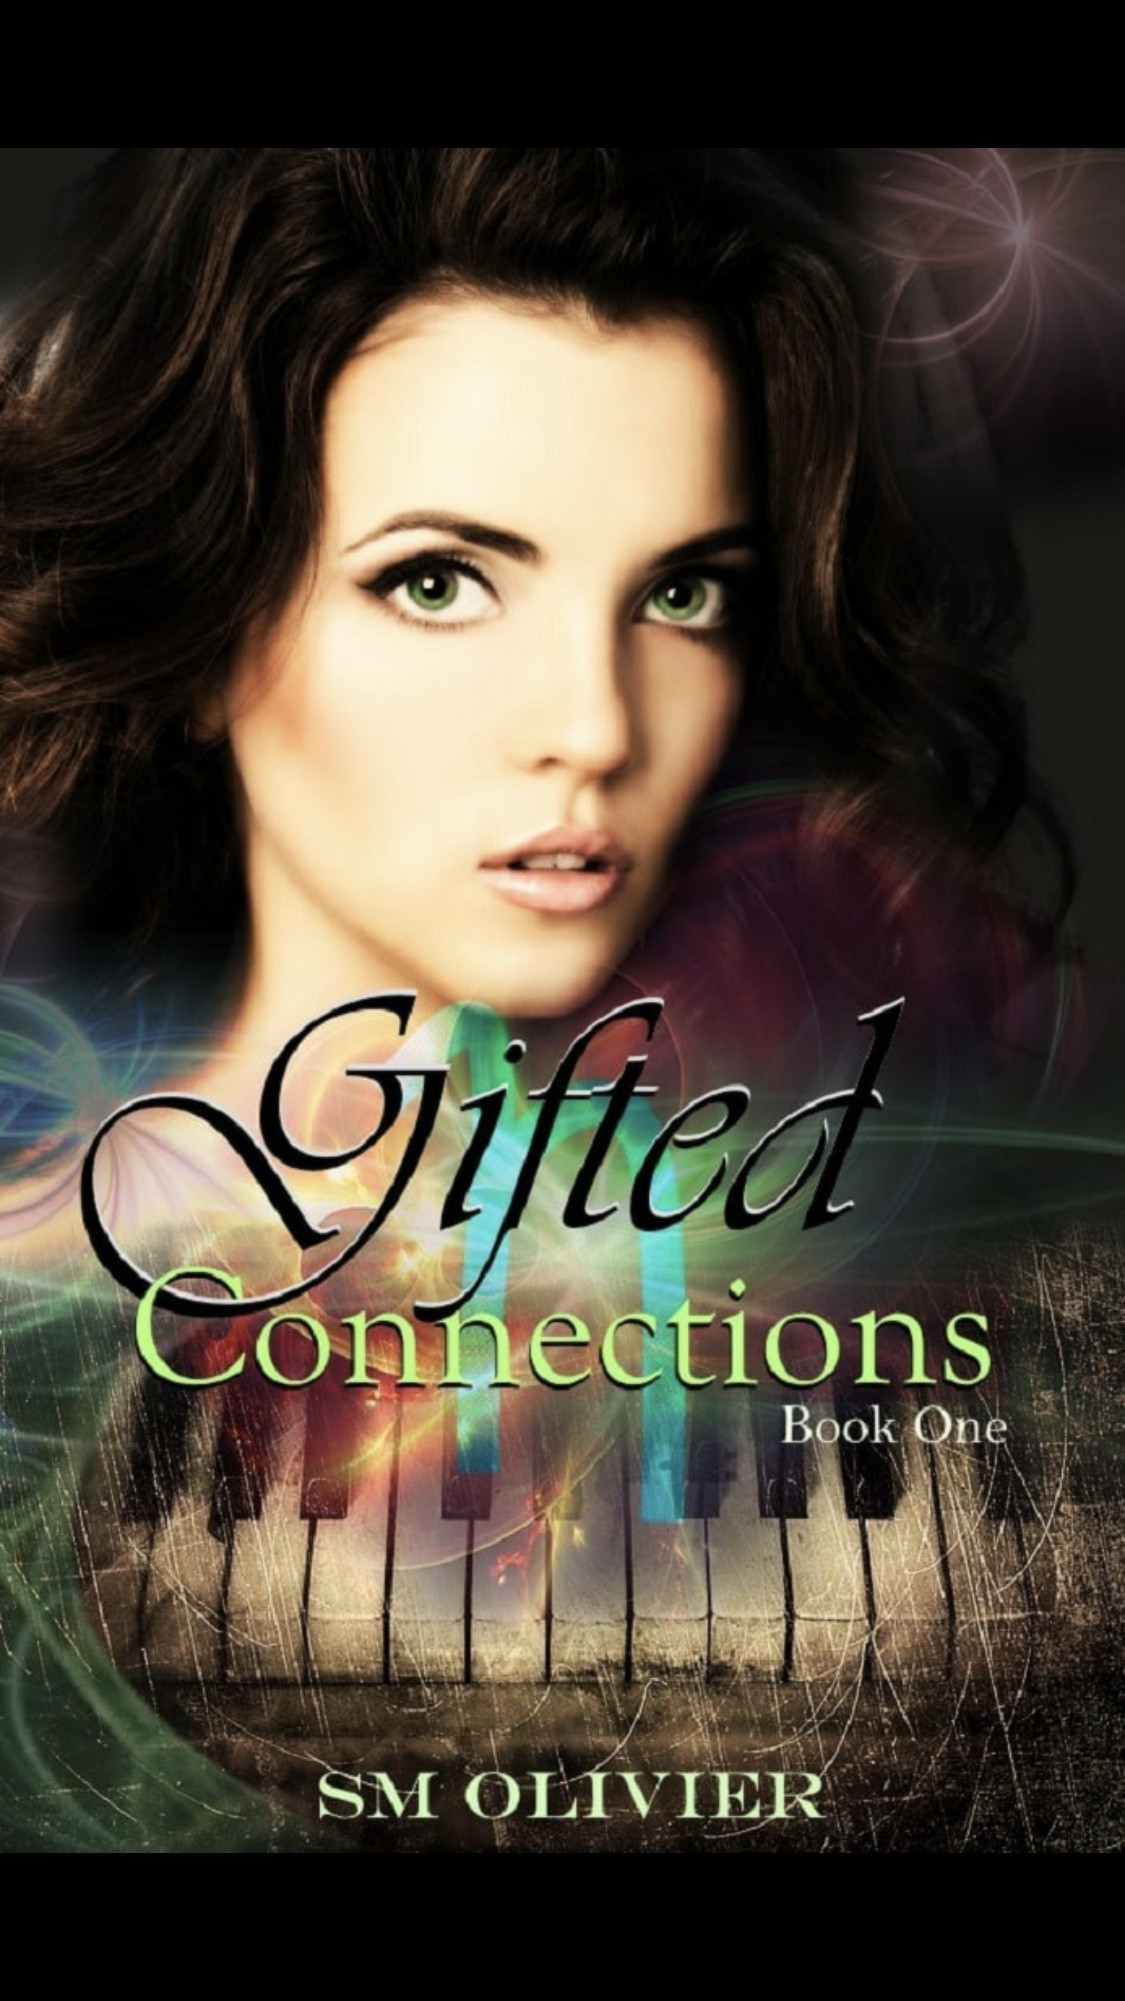 Gifted Connections Book 1 by SM Oliver - A Book Review #BookReview #RH #NA #UrbanFantasy #Recommend #SlowBurn #MediumBurn